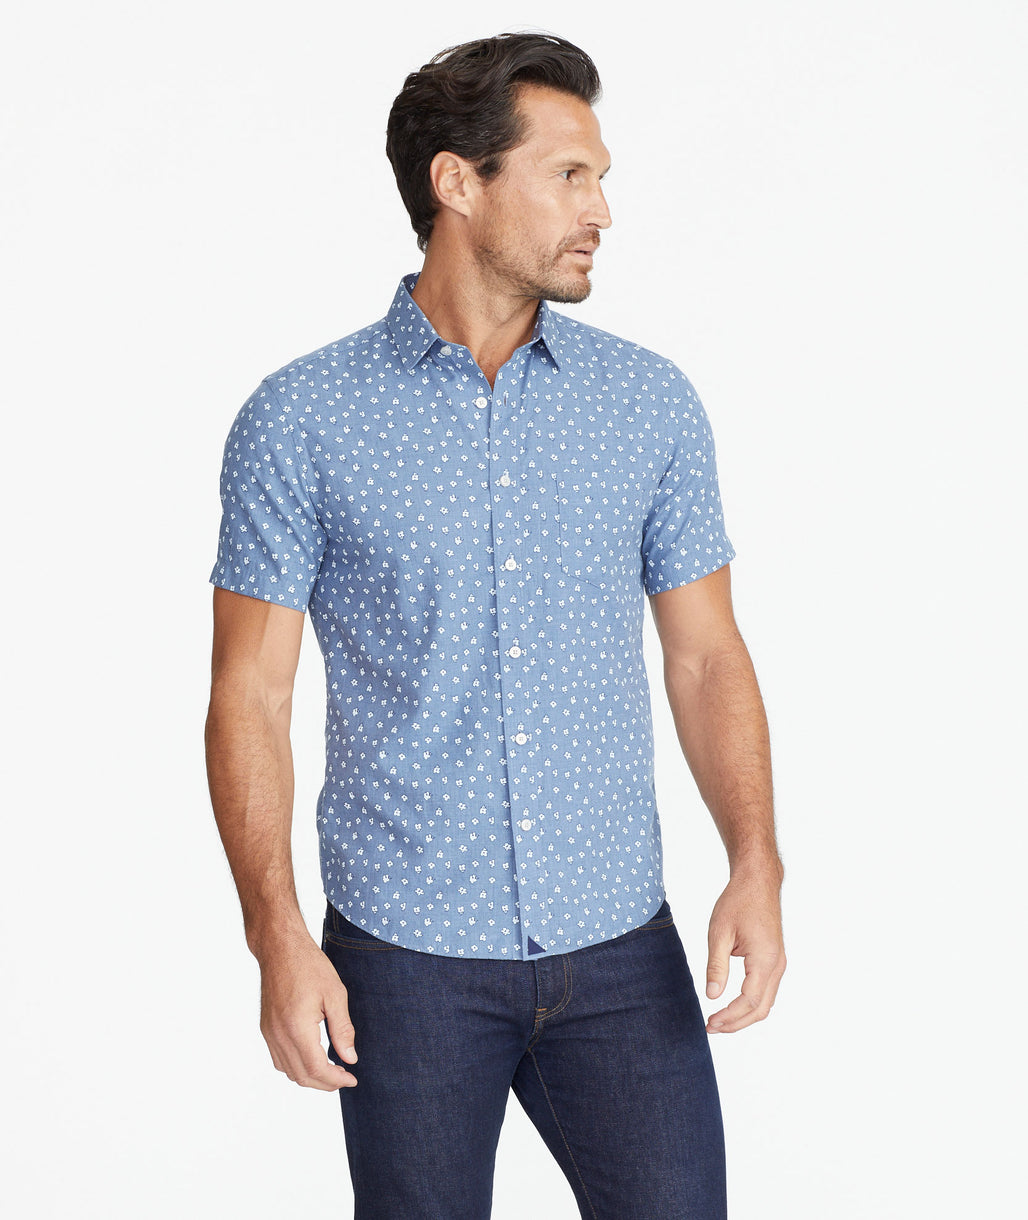 Model wearing a Blue Classic Short-Sleeve Shirt with Floral Print